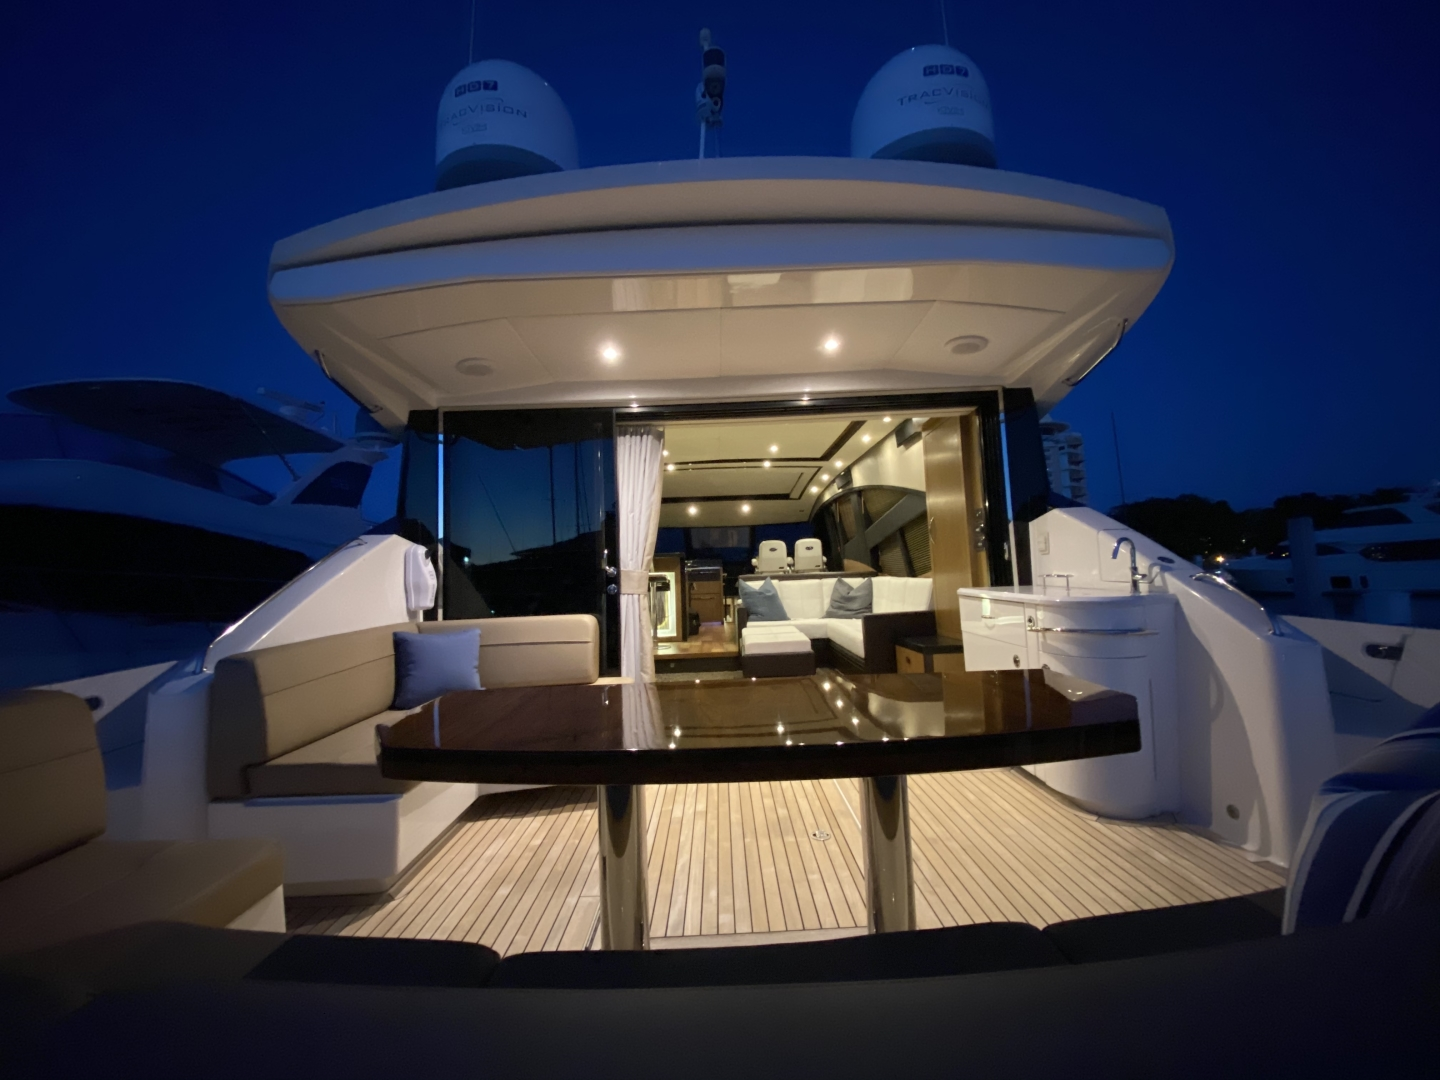 Sea Ray-L650 Express 2016-Cozy Fort Lauderdale-Florida-United States-2016 Sea Ray L650 Cozy   Night View-1372408 | Thumbnail